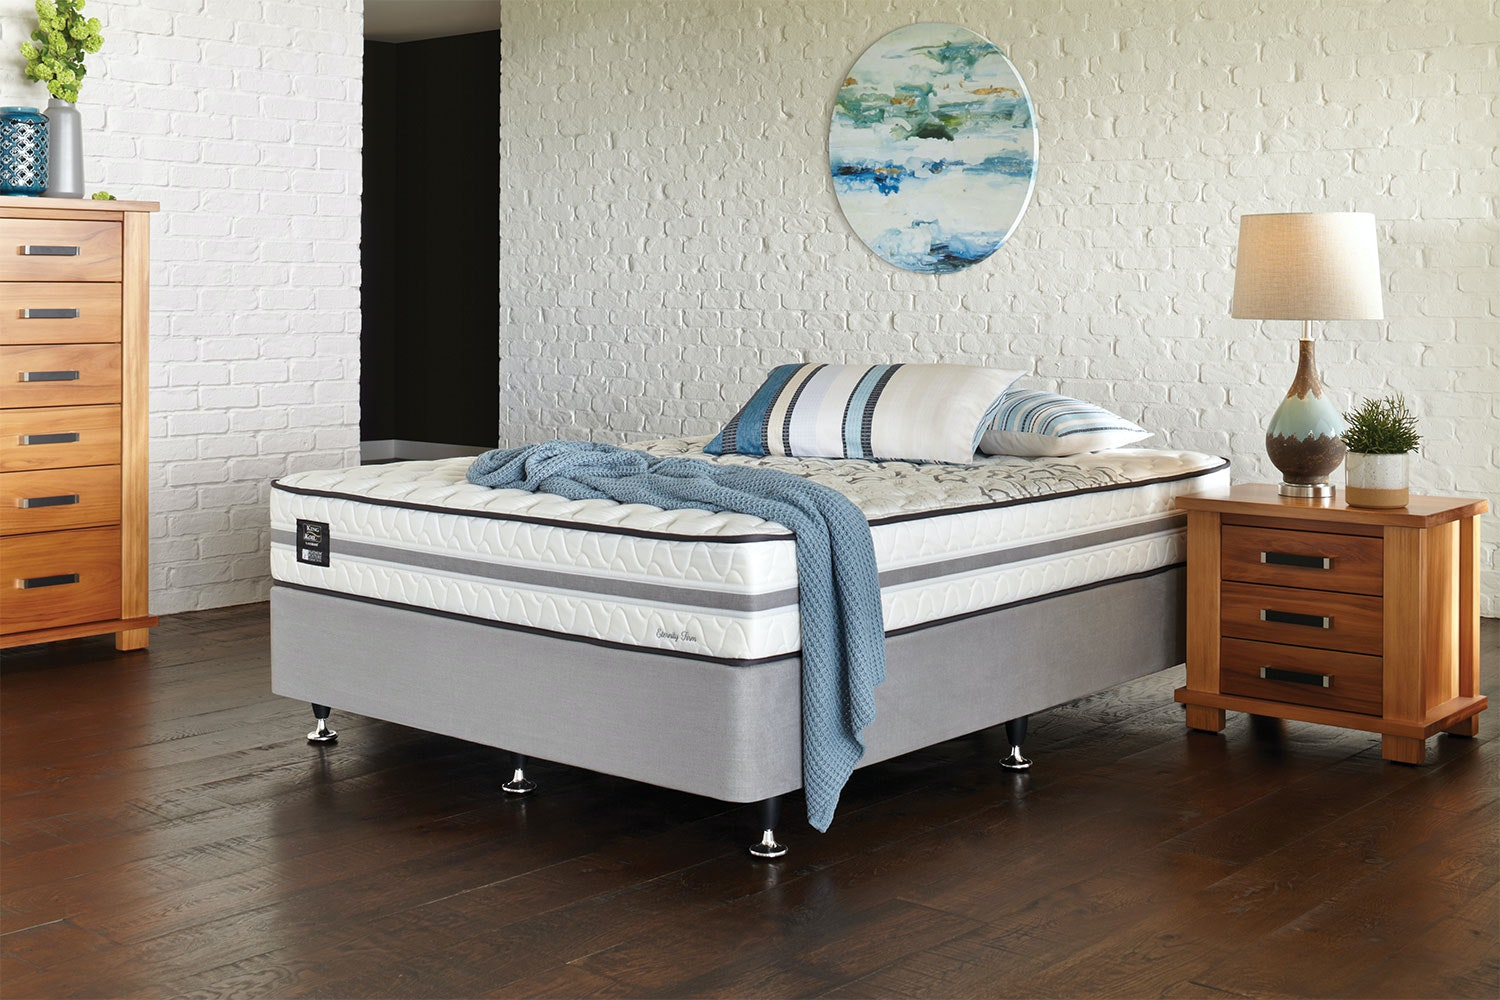 Eternity Firm King Bed by King Koil